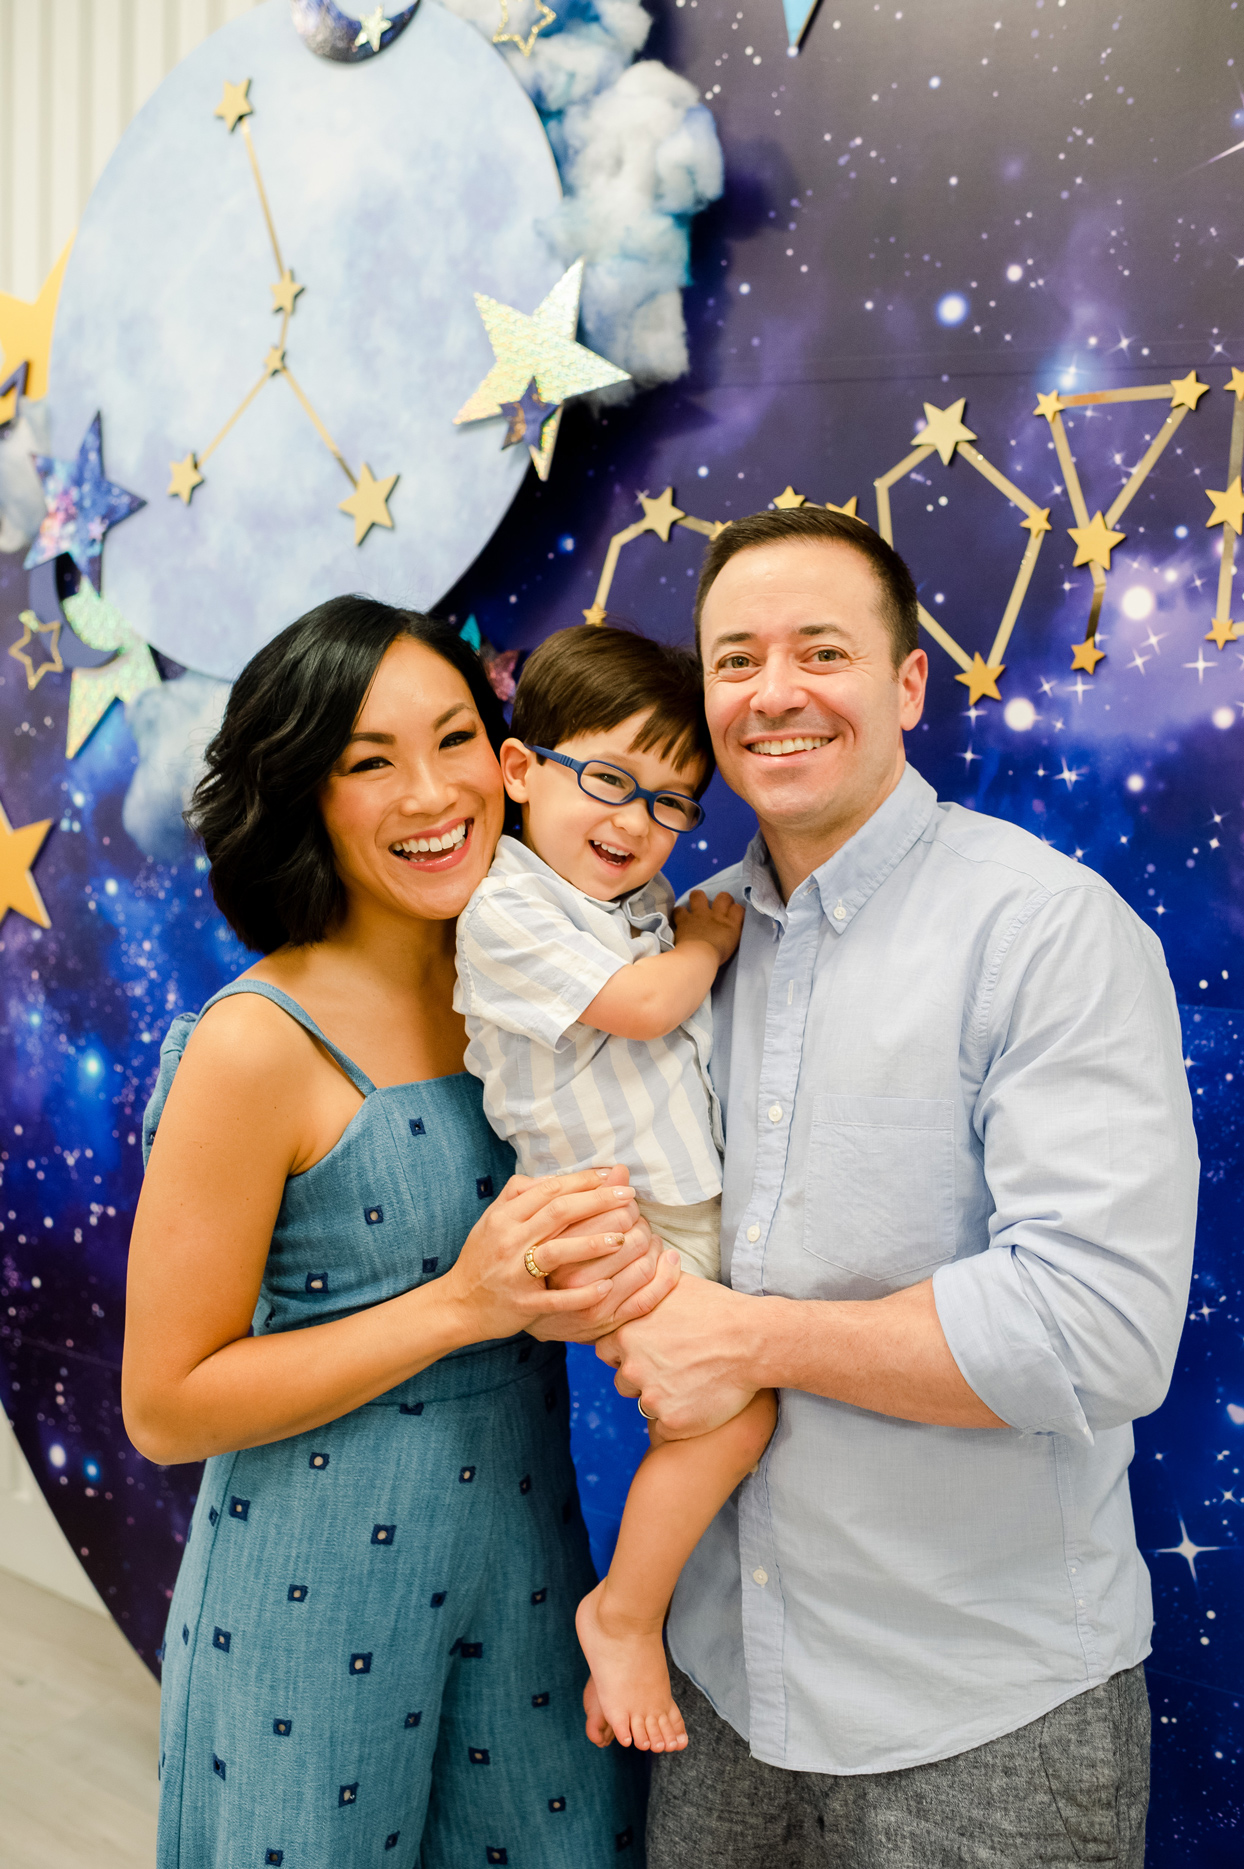 parents and kid at celestial themed birthday party smiling